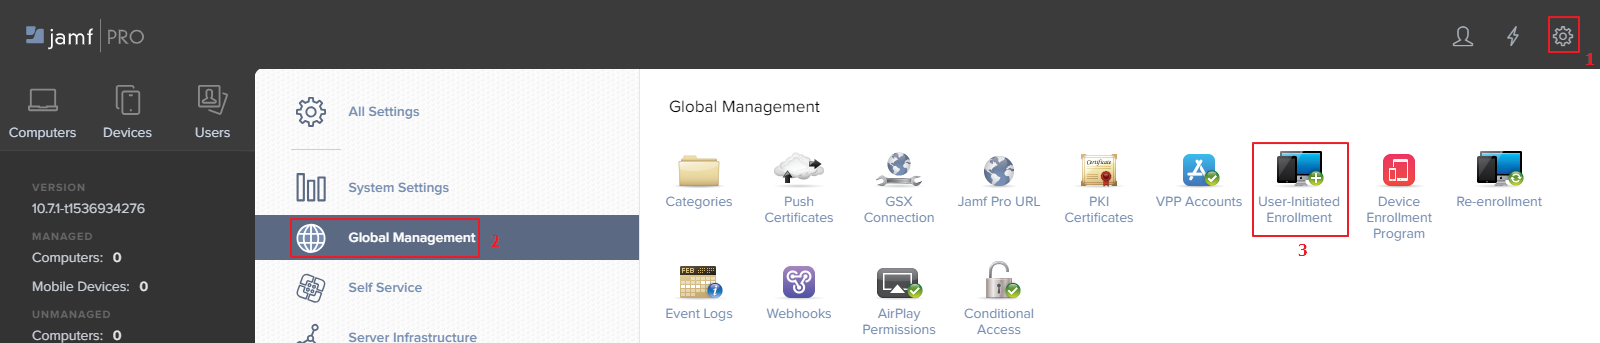 iOS) User Guide | FortiClient 6 0 1 | Fortinet Documentation Library